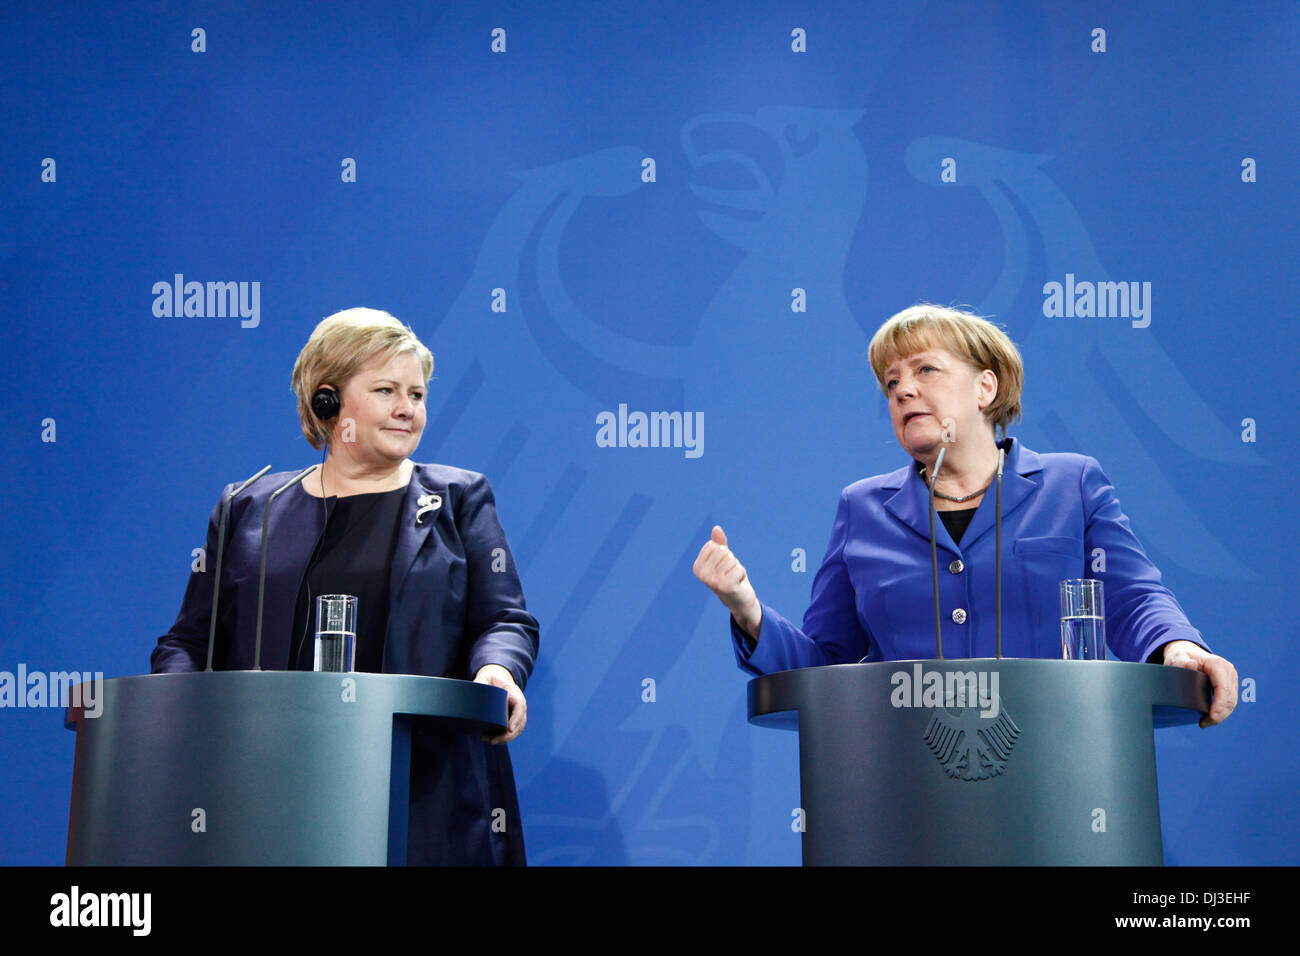 Berlin, Germany. 20th Nov, 2013. Angela Merkel, German Chancellor, receives Norwegian prime minister Erna Solberg (Conservative Party), at the Chancellery in Berlin. / Picture: Angela Merkel, German Chancellor, and Norwegian prime minister Erna Solberg (Conservative Party), during joint press conference at the Chancellery in Berlin, on November 20, 2013.Photo: Reynaldo Paganelli/NurPhoto Credit:  Reynaldo Paganelli/NurPhoto/ZUMAPRESS.com/Alamy Live News - Stock Image